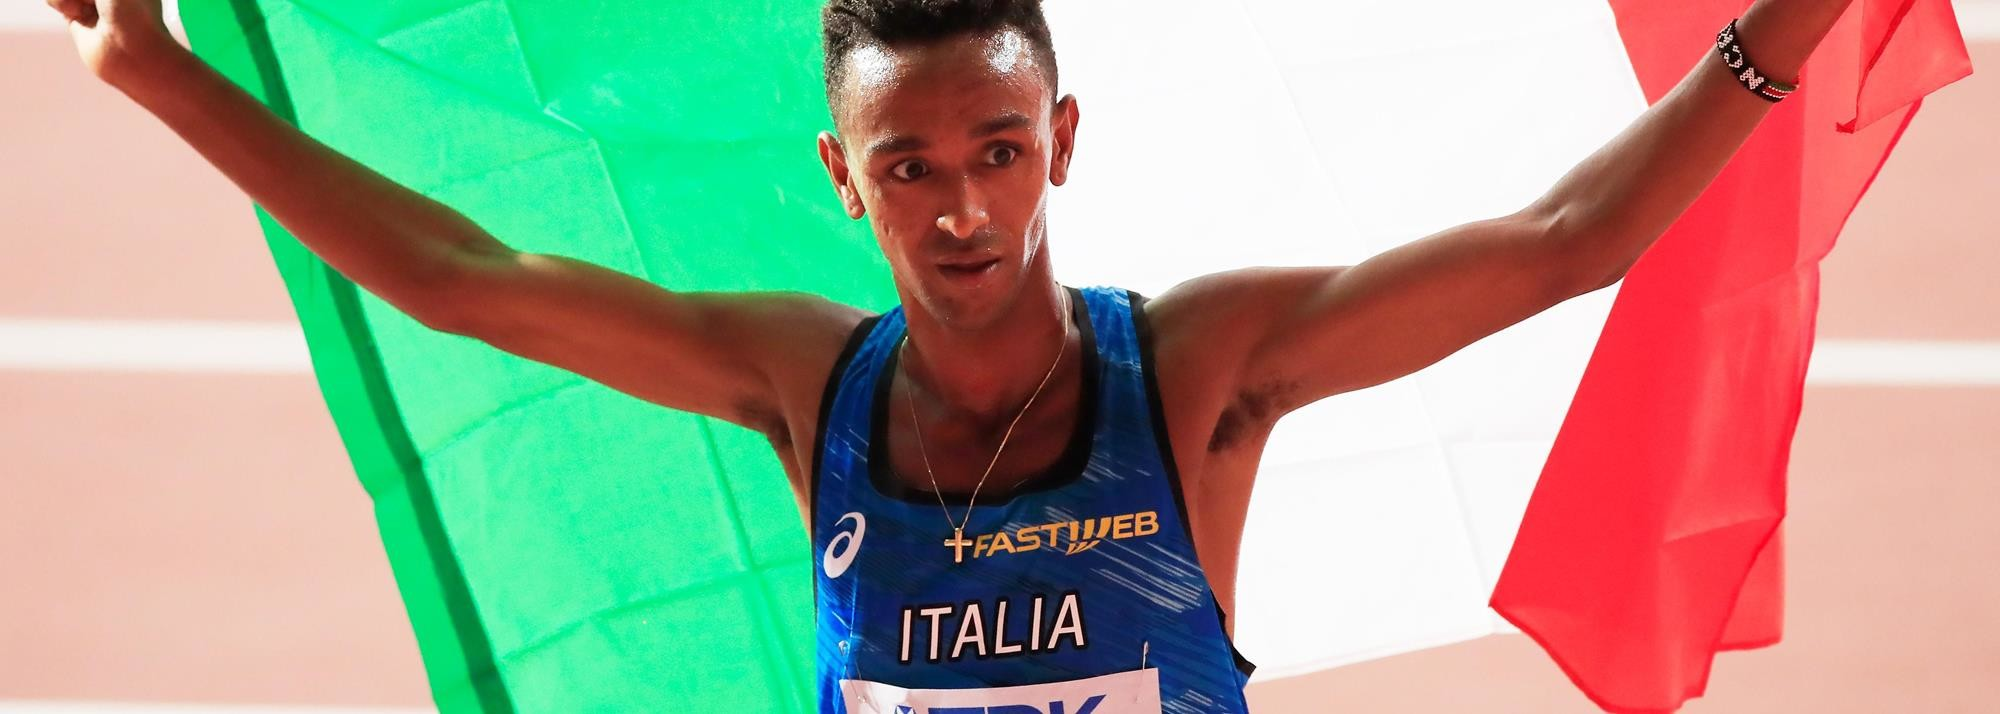 Italian athletes aiming to keep upbeat and focused are training under lockdown